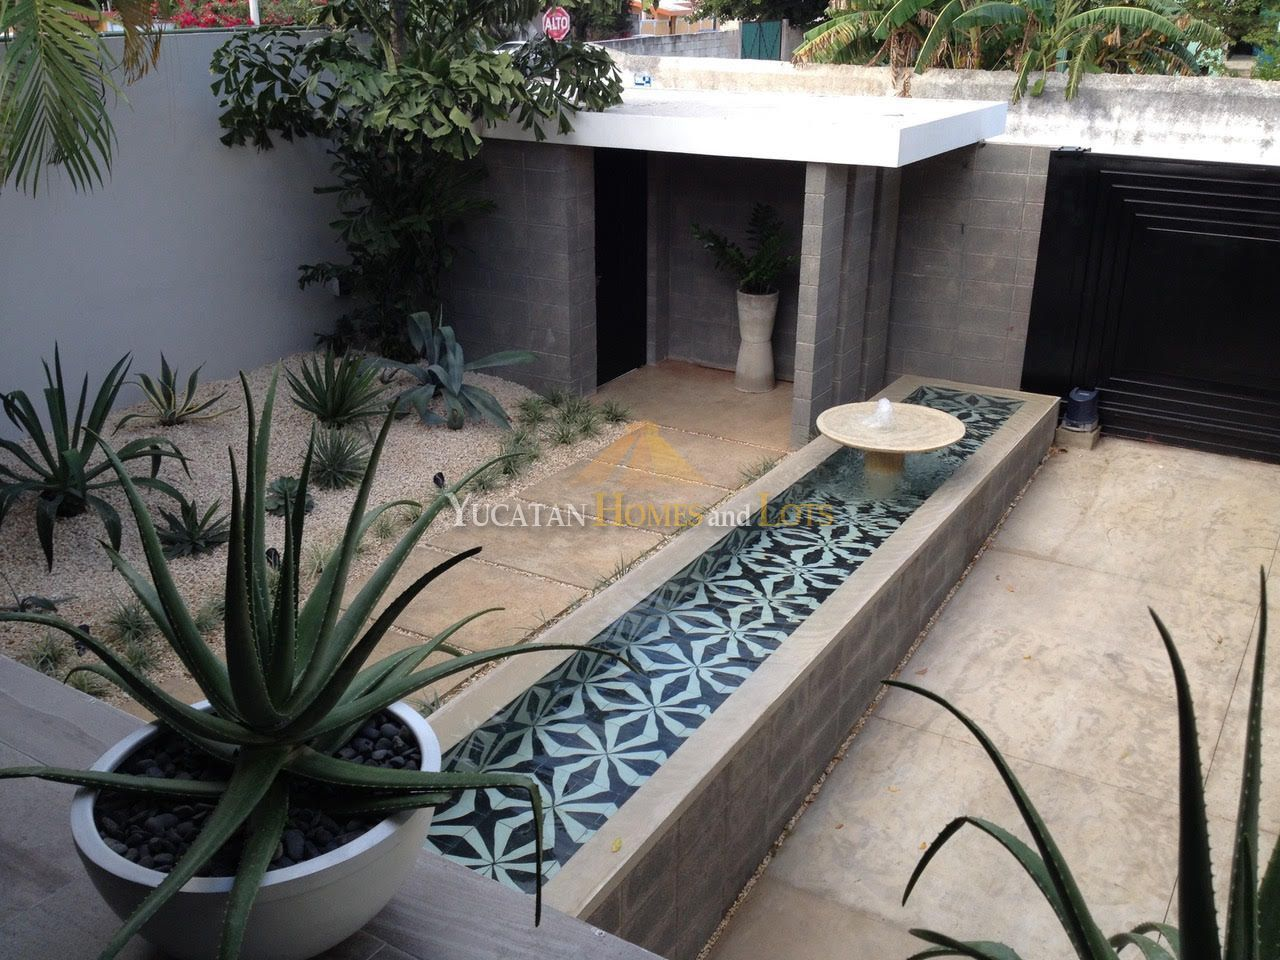 Mid century modern house for sale in Merida Yucatan Mexico 14